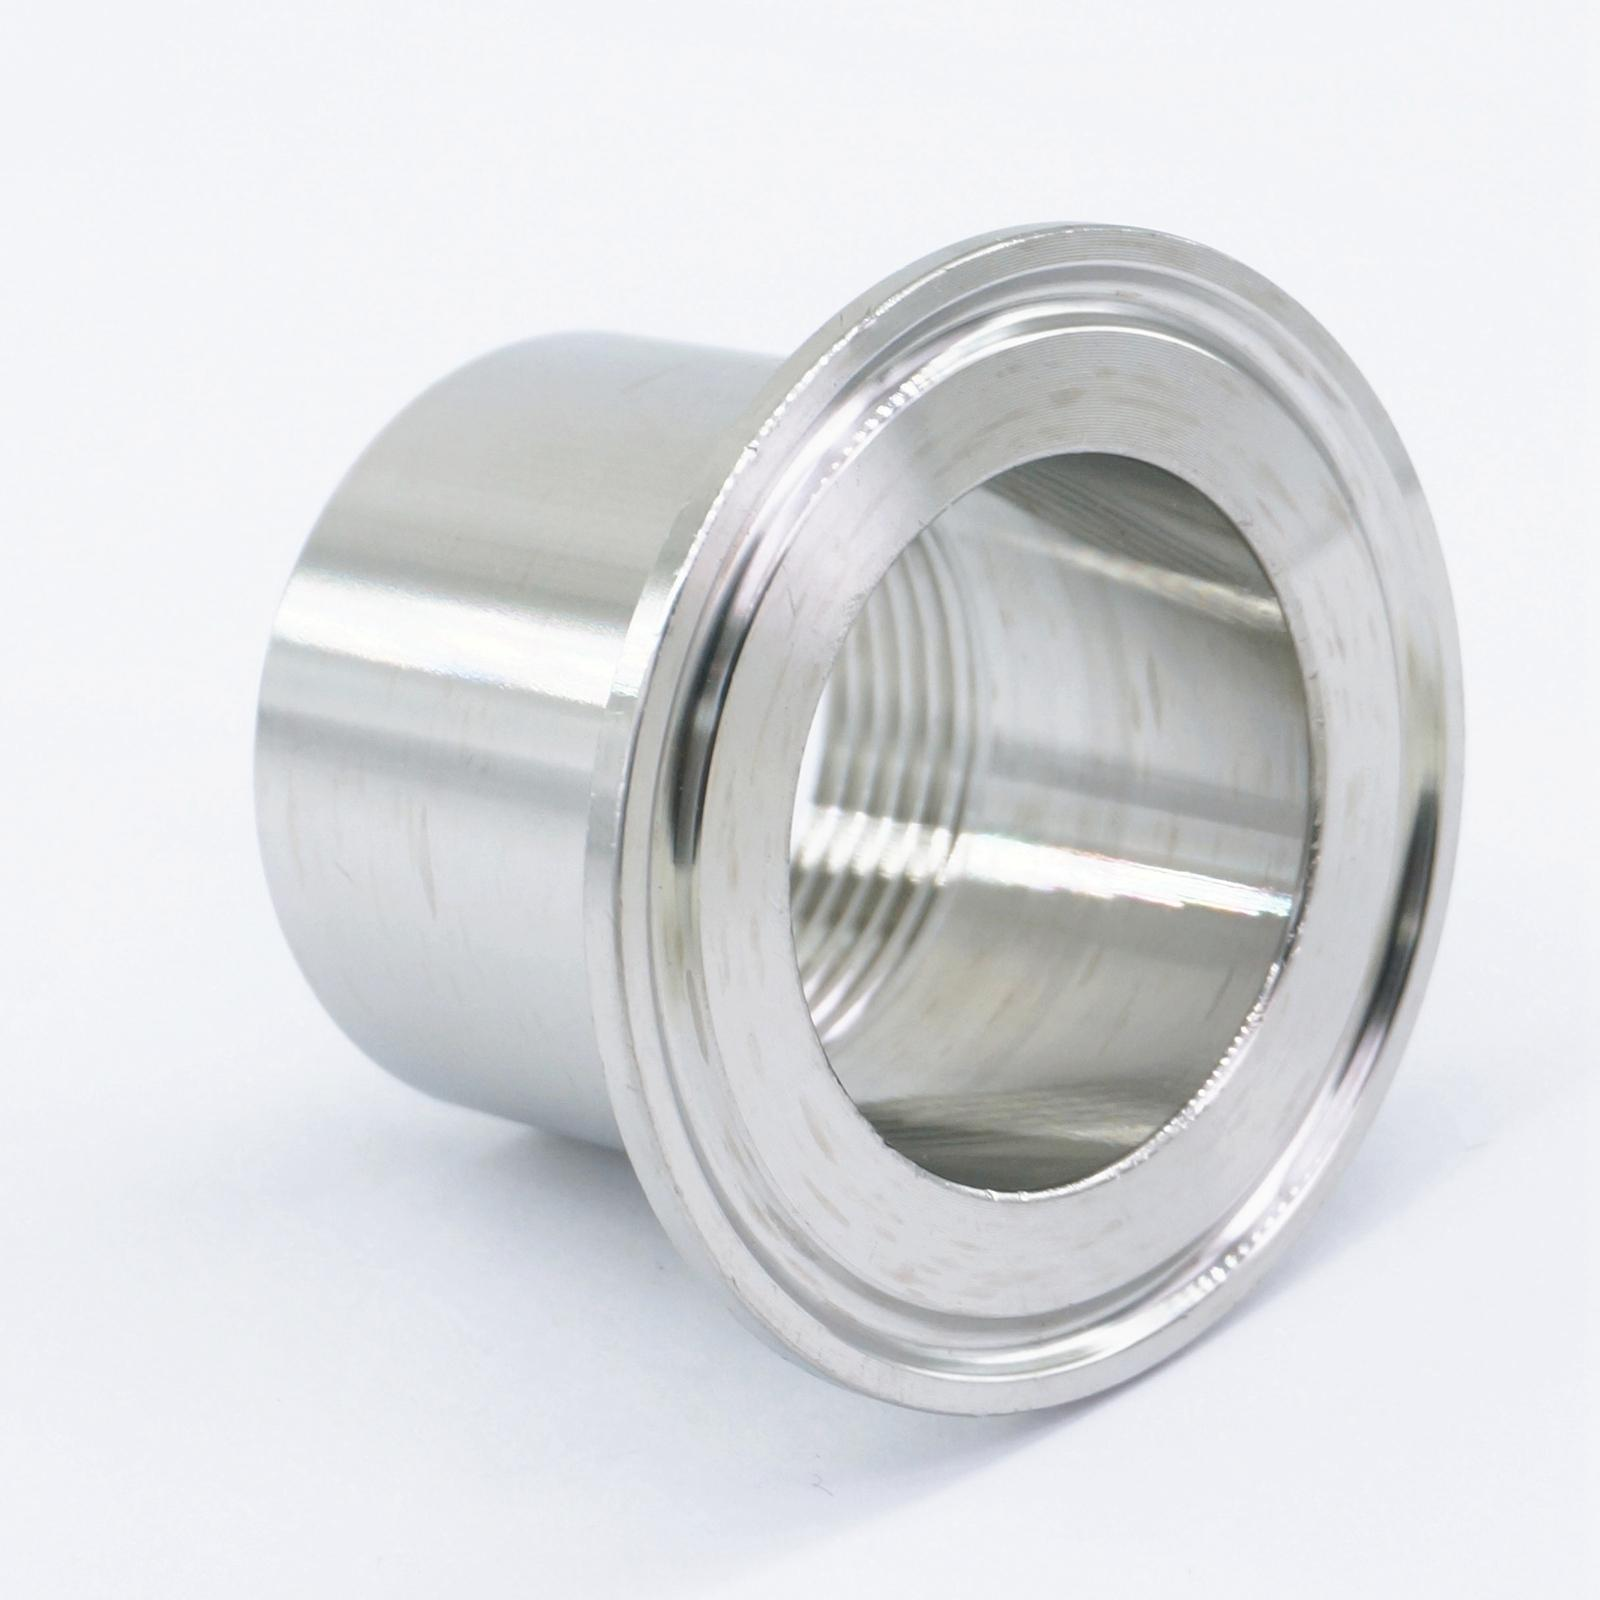 1.5 304 Stainless Steel Sanitary Short Ferrule Tri-Clamp Fitting